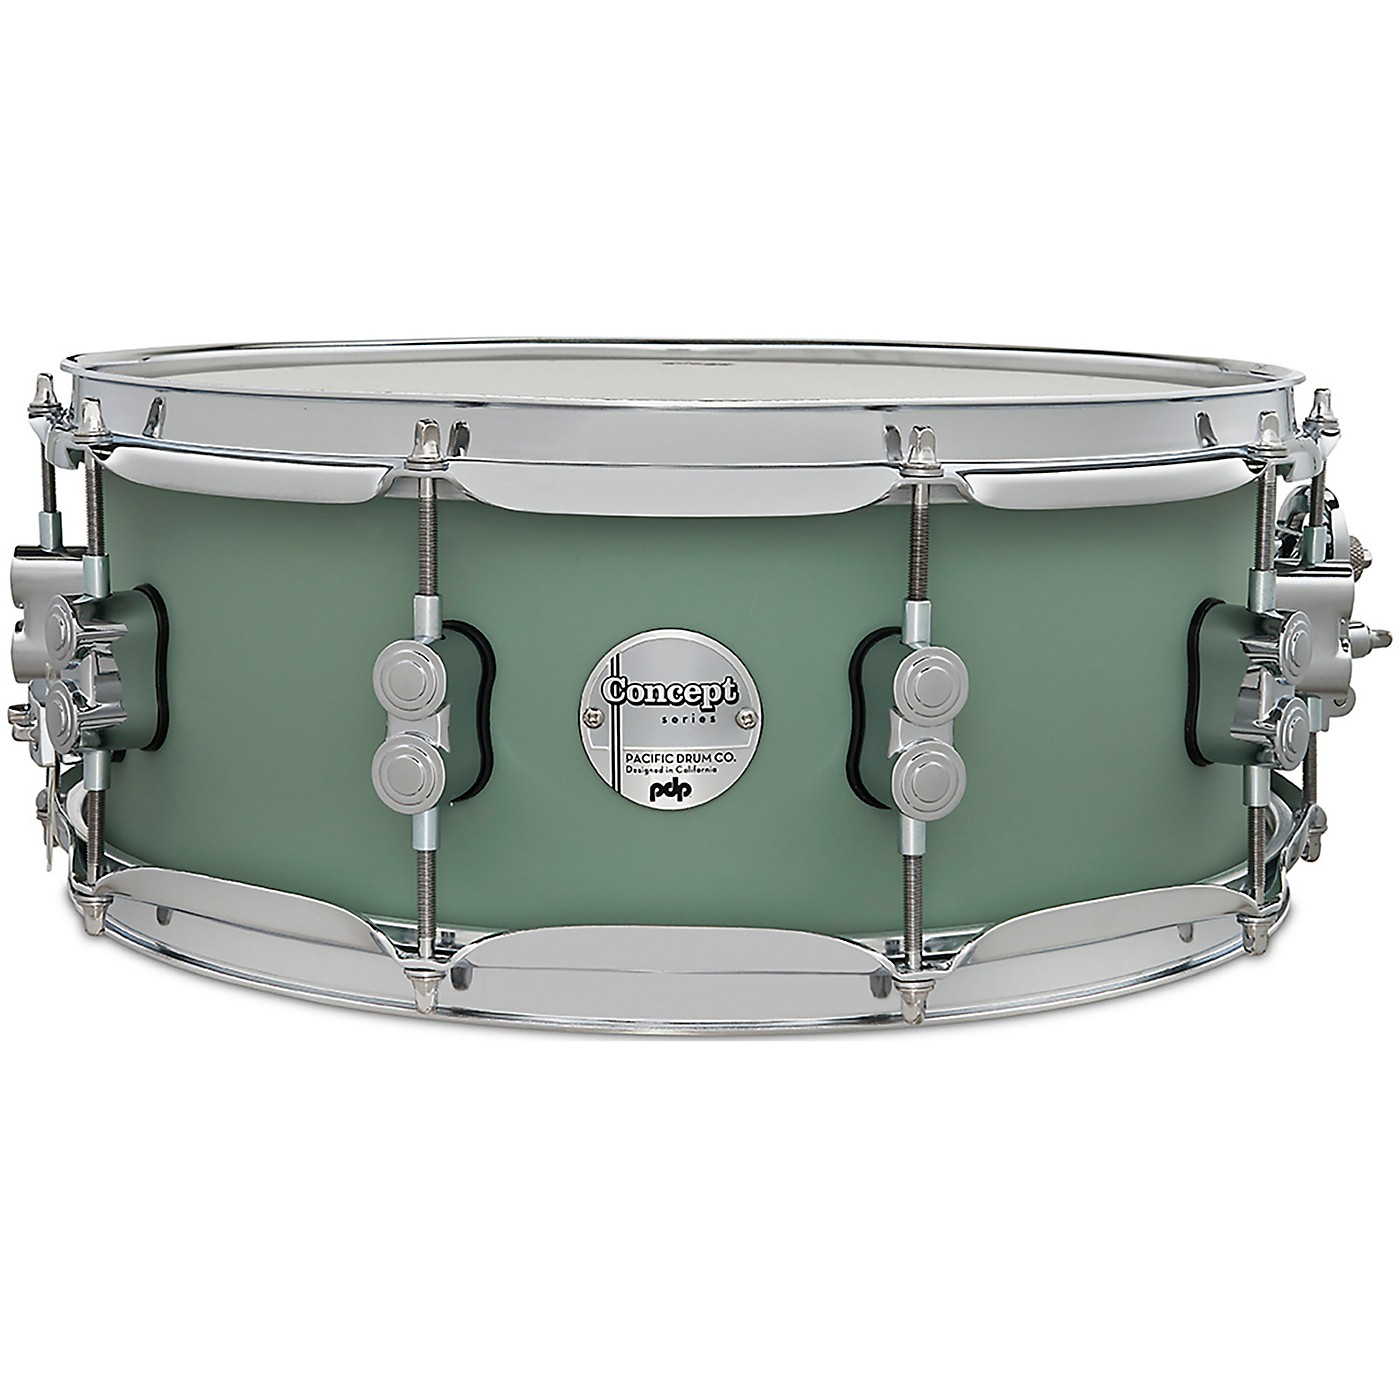 PDP by DW Concept Maple Snare Drum with Chrome Hardware thumbnail